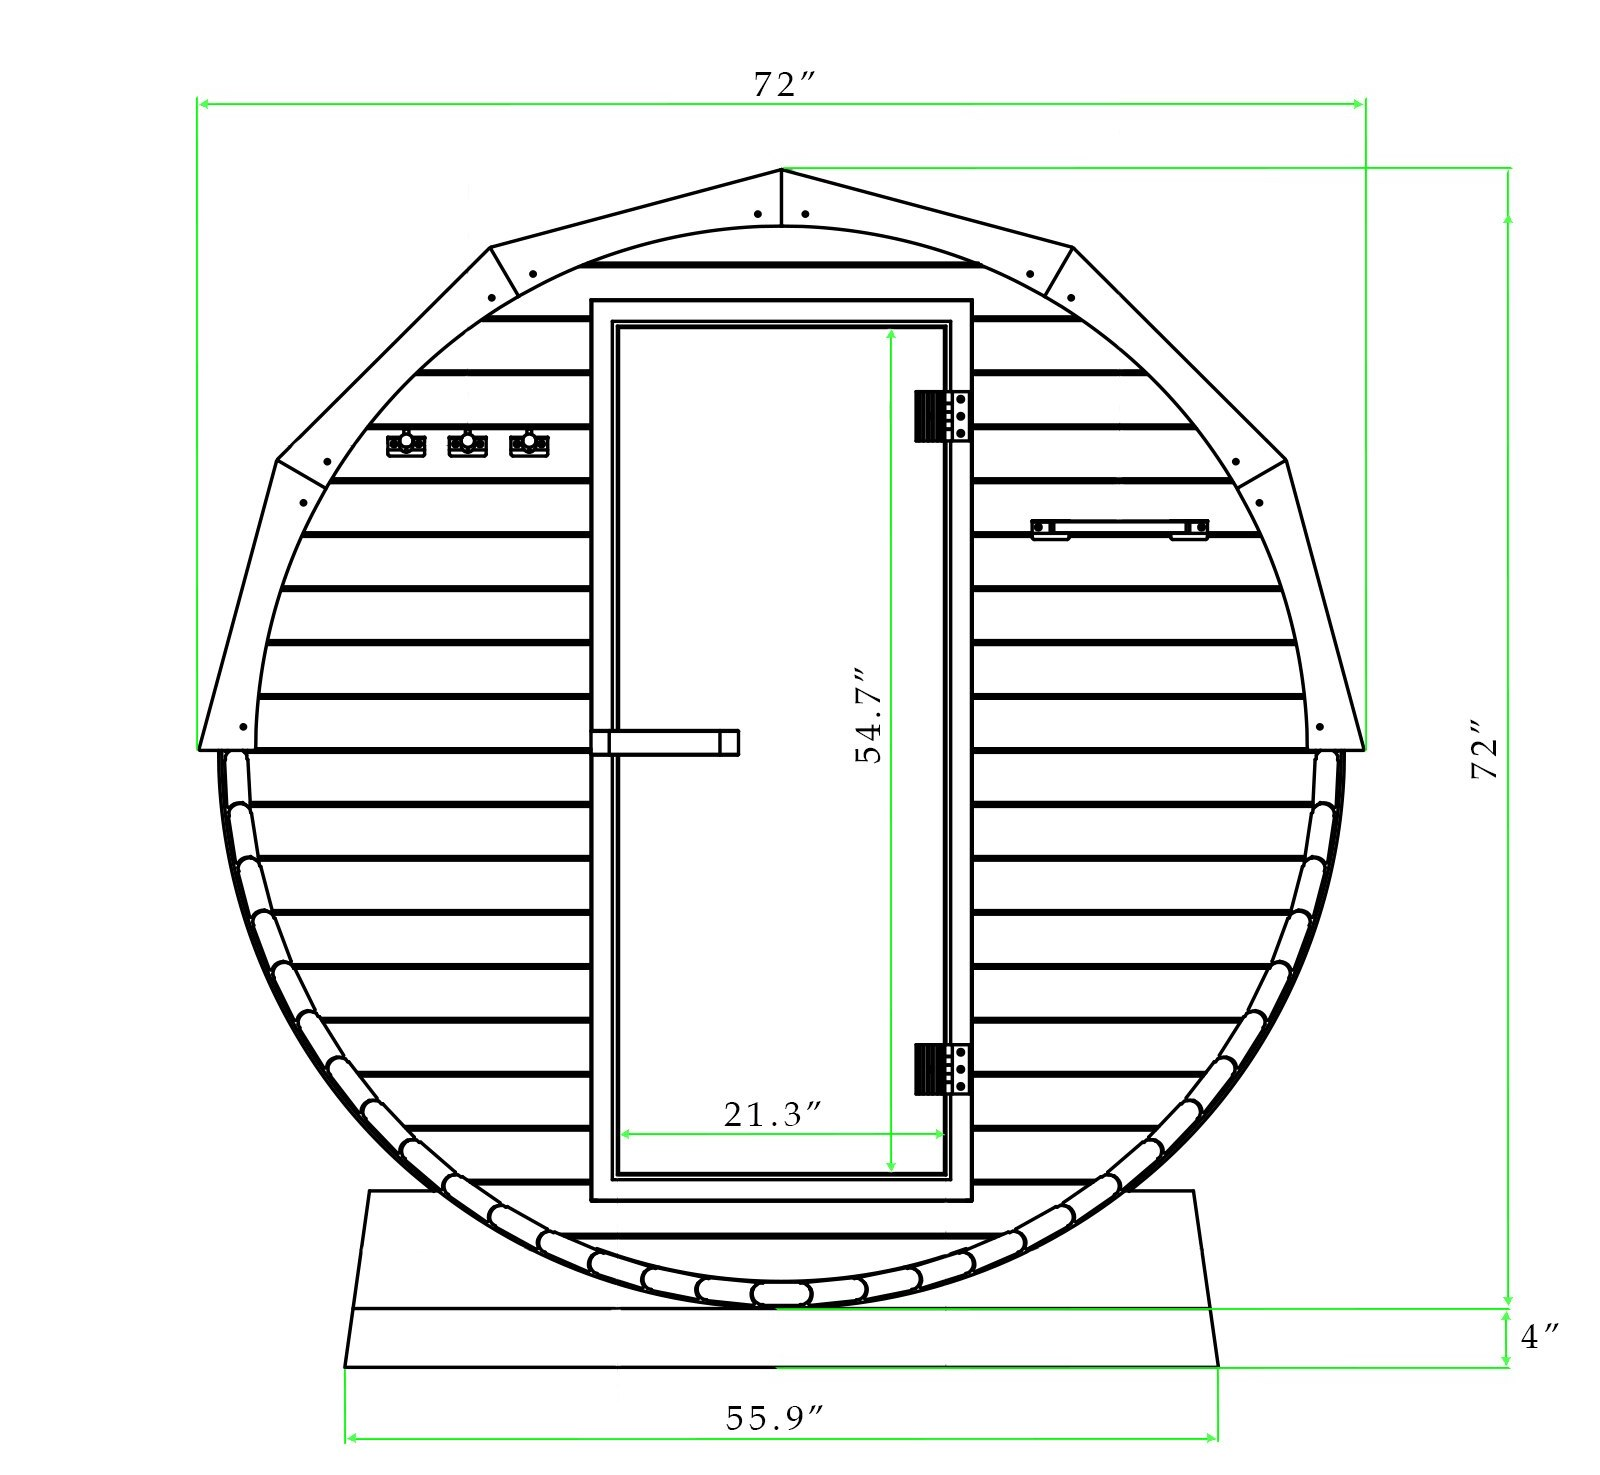 Black and white drawing with dimensions of 6 ft red cedar barrel sauna with porch - 4 Person (front view)